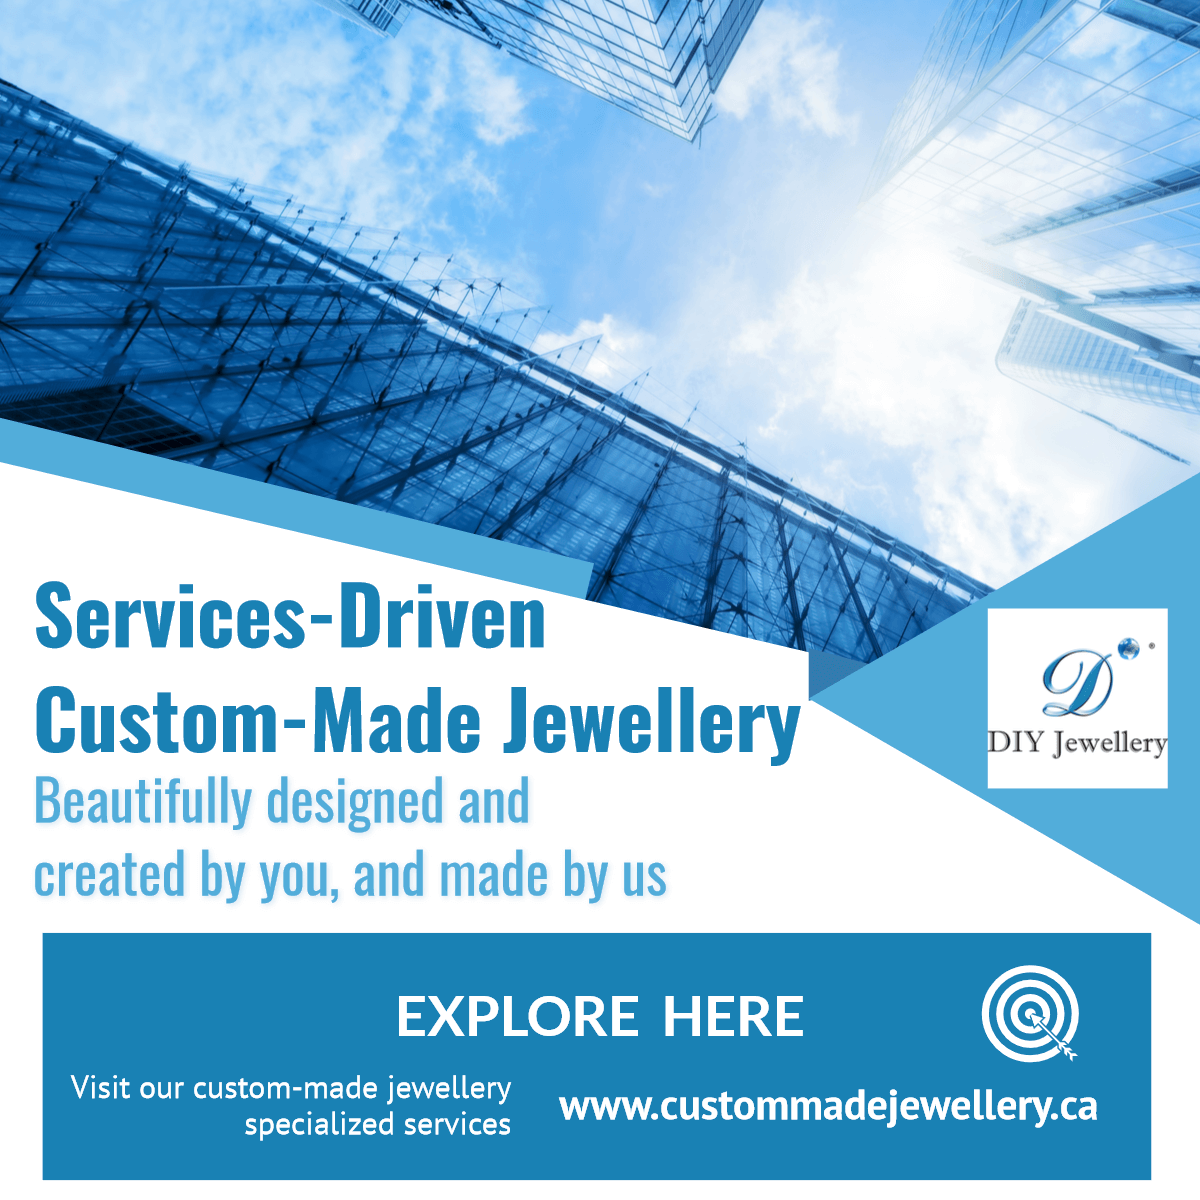 Visit our Custom-Made Jewellery website for specific custom services. This link will open in a new window.